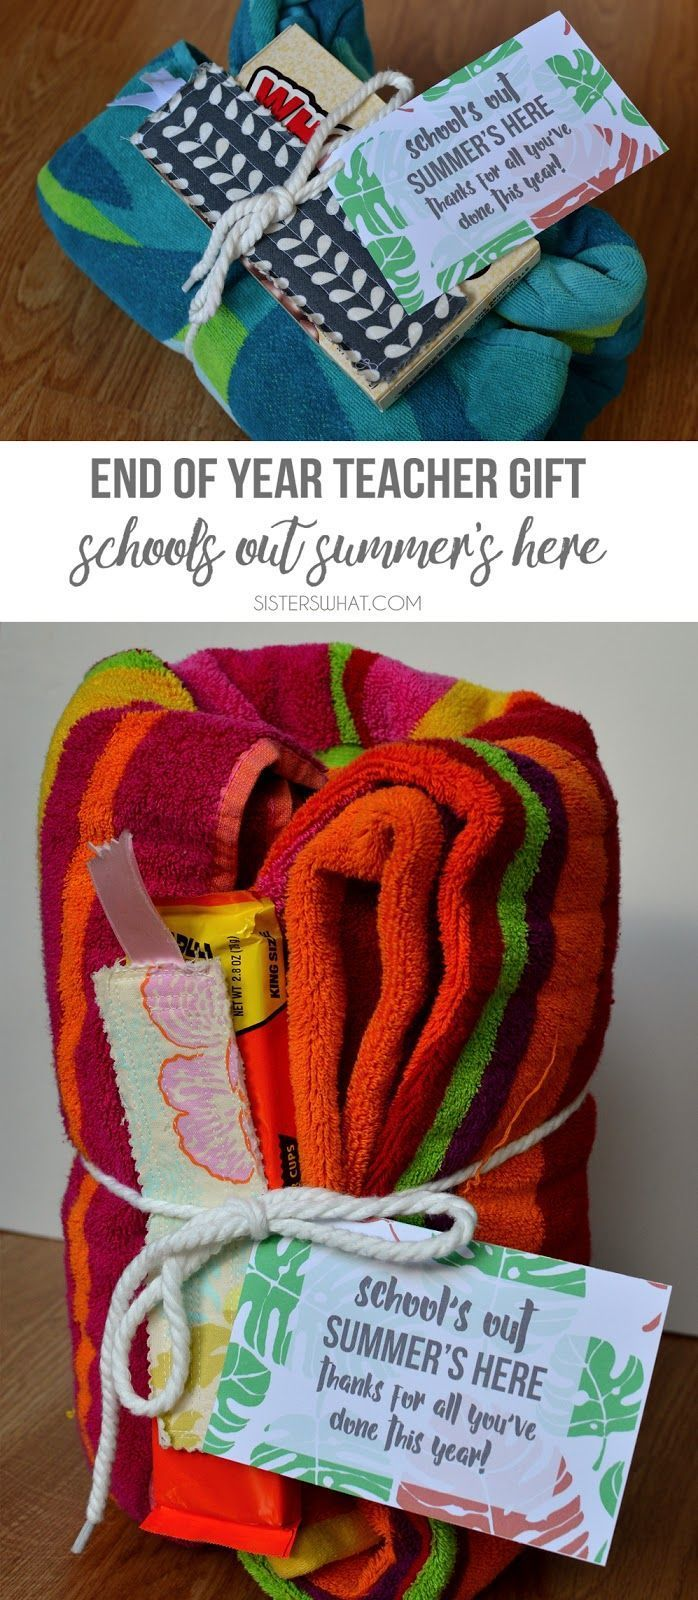 Summers out thank you gift for teachers #appreciationgifts